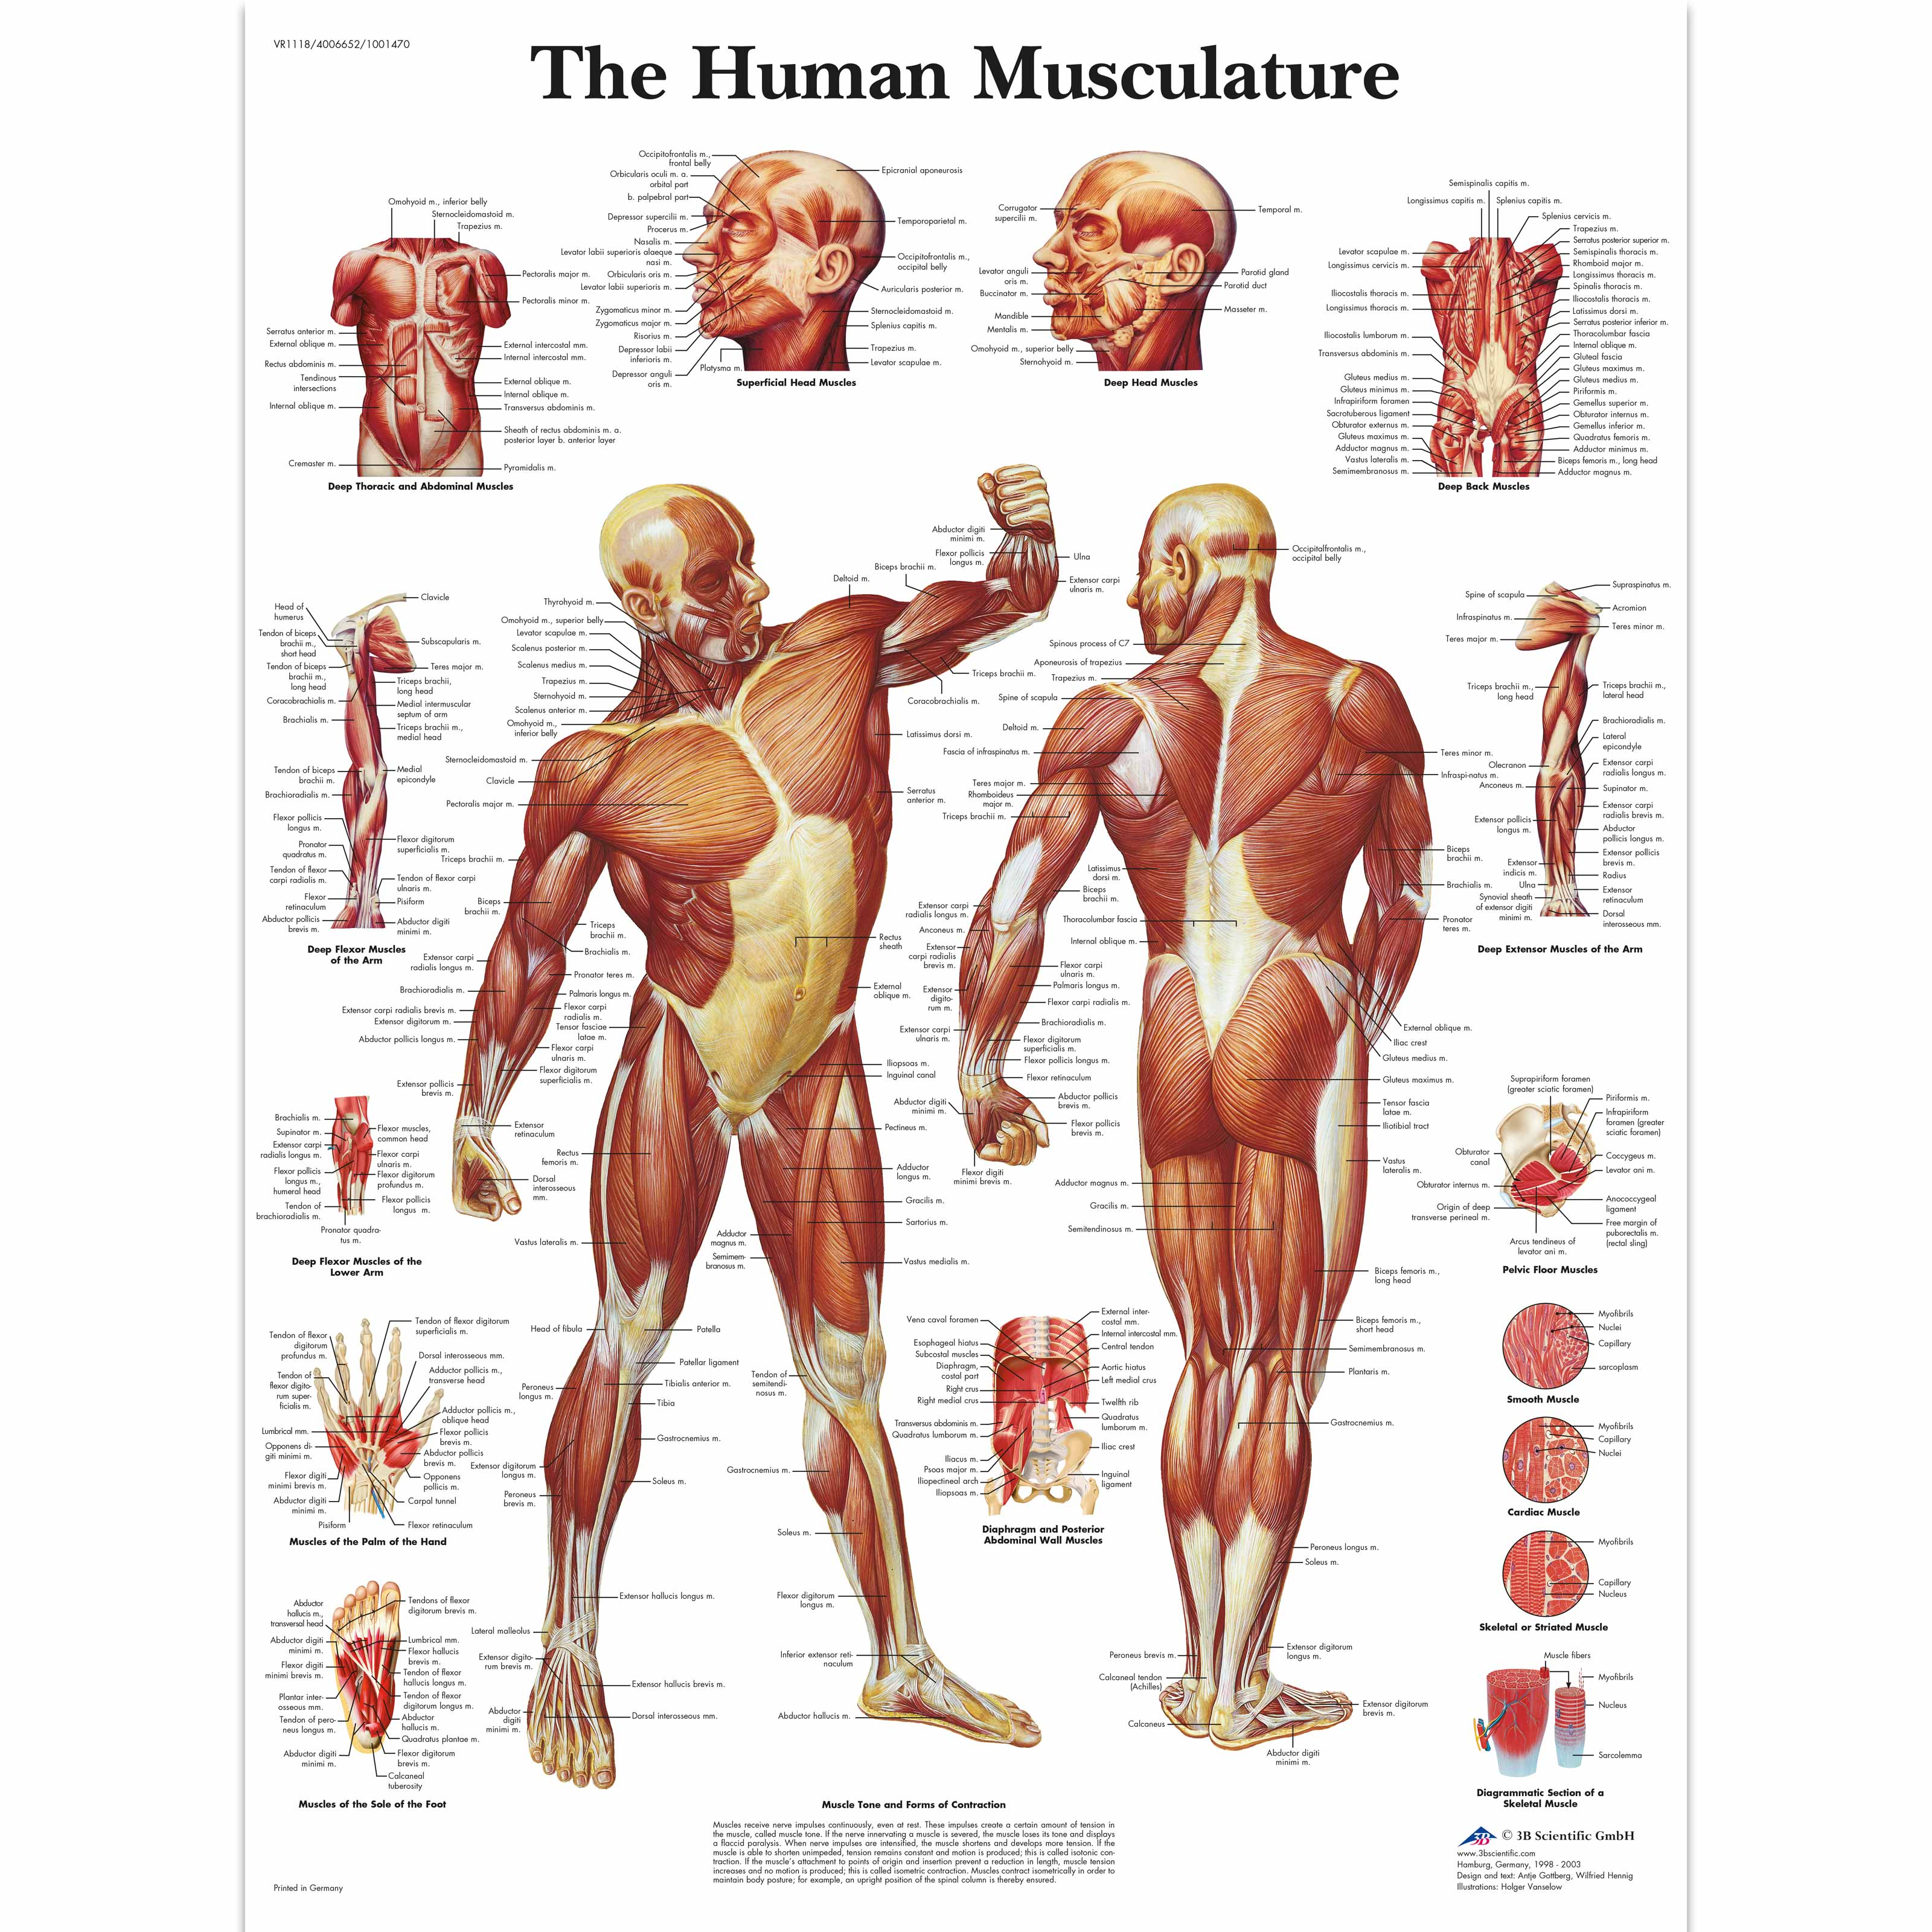 muscle anatomy chart - Carnaval.jmsmusic.co